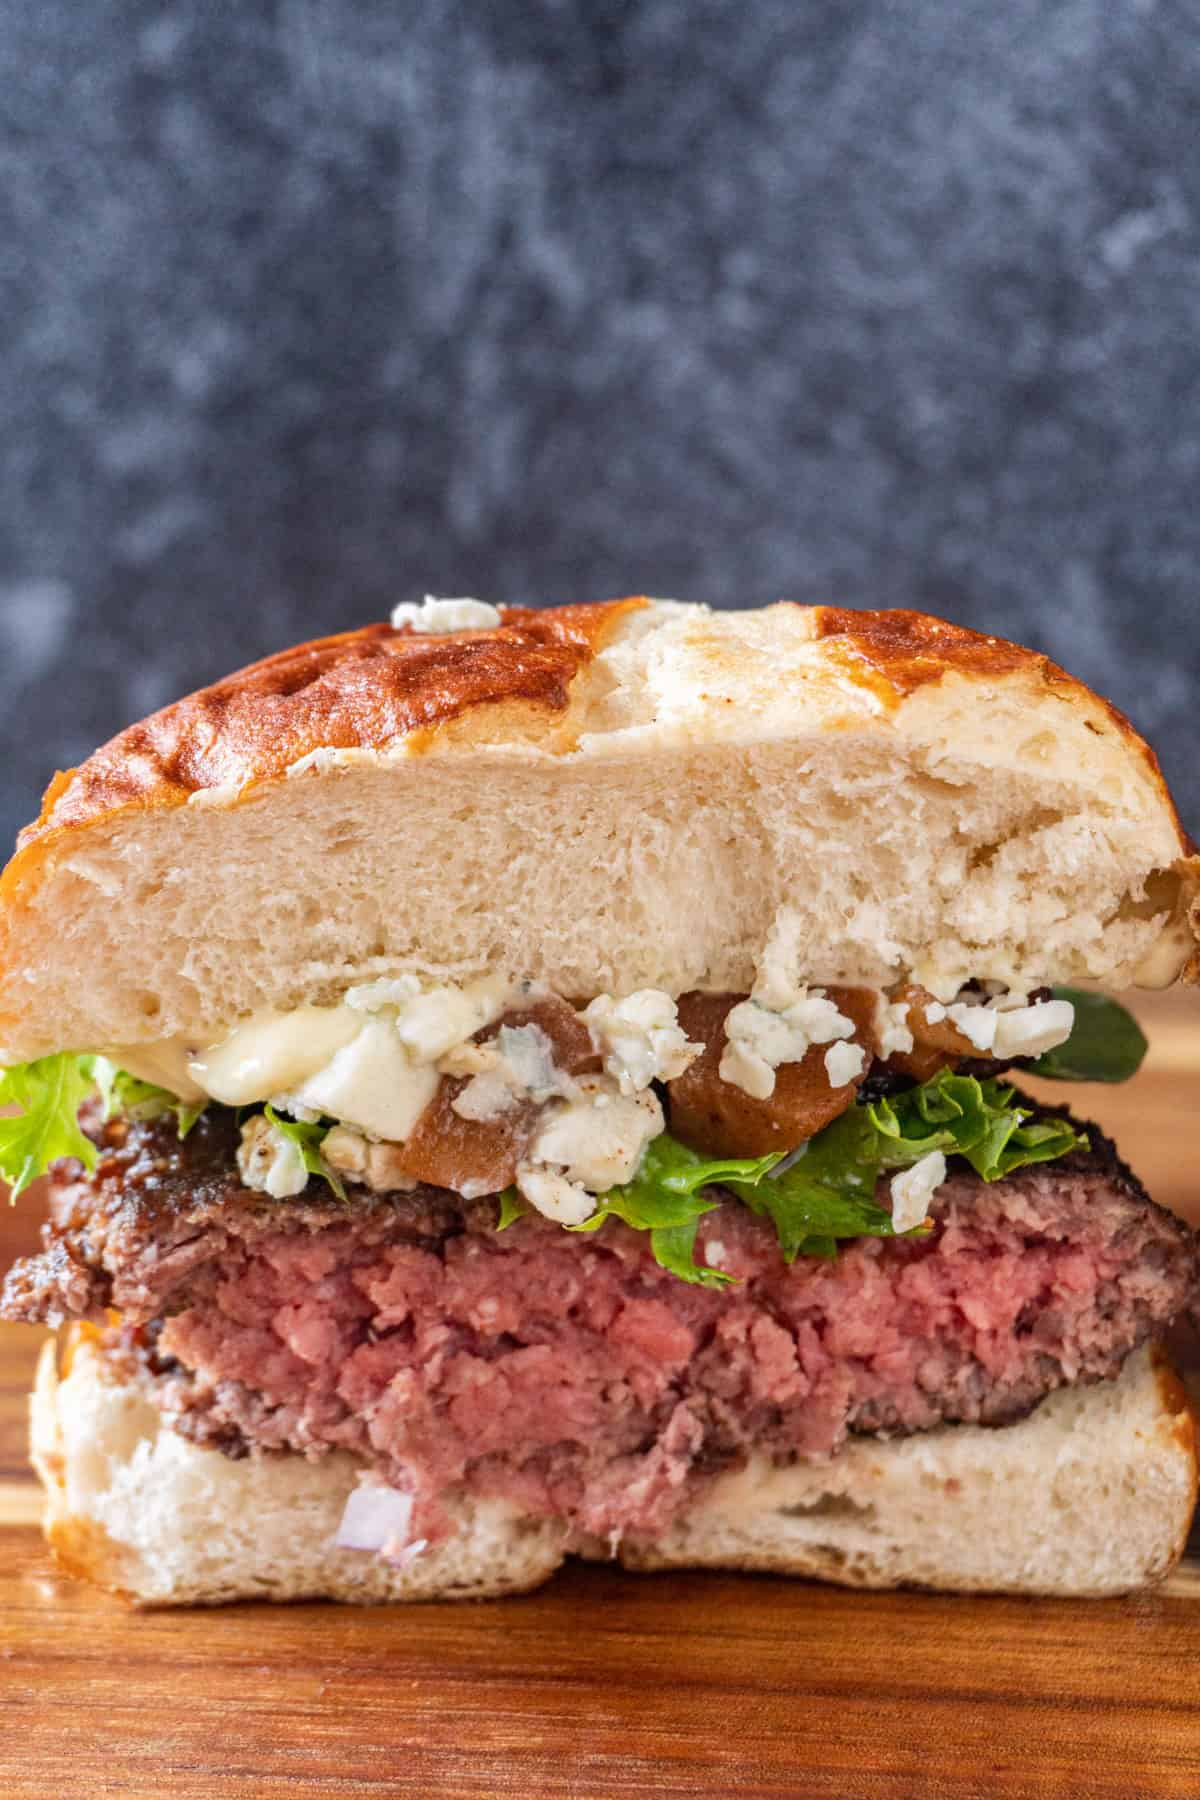 blue cheese burger cut in half